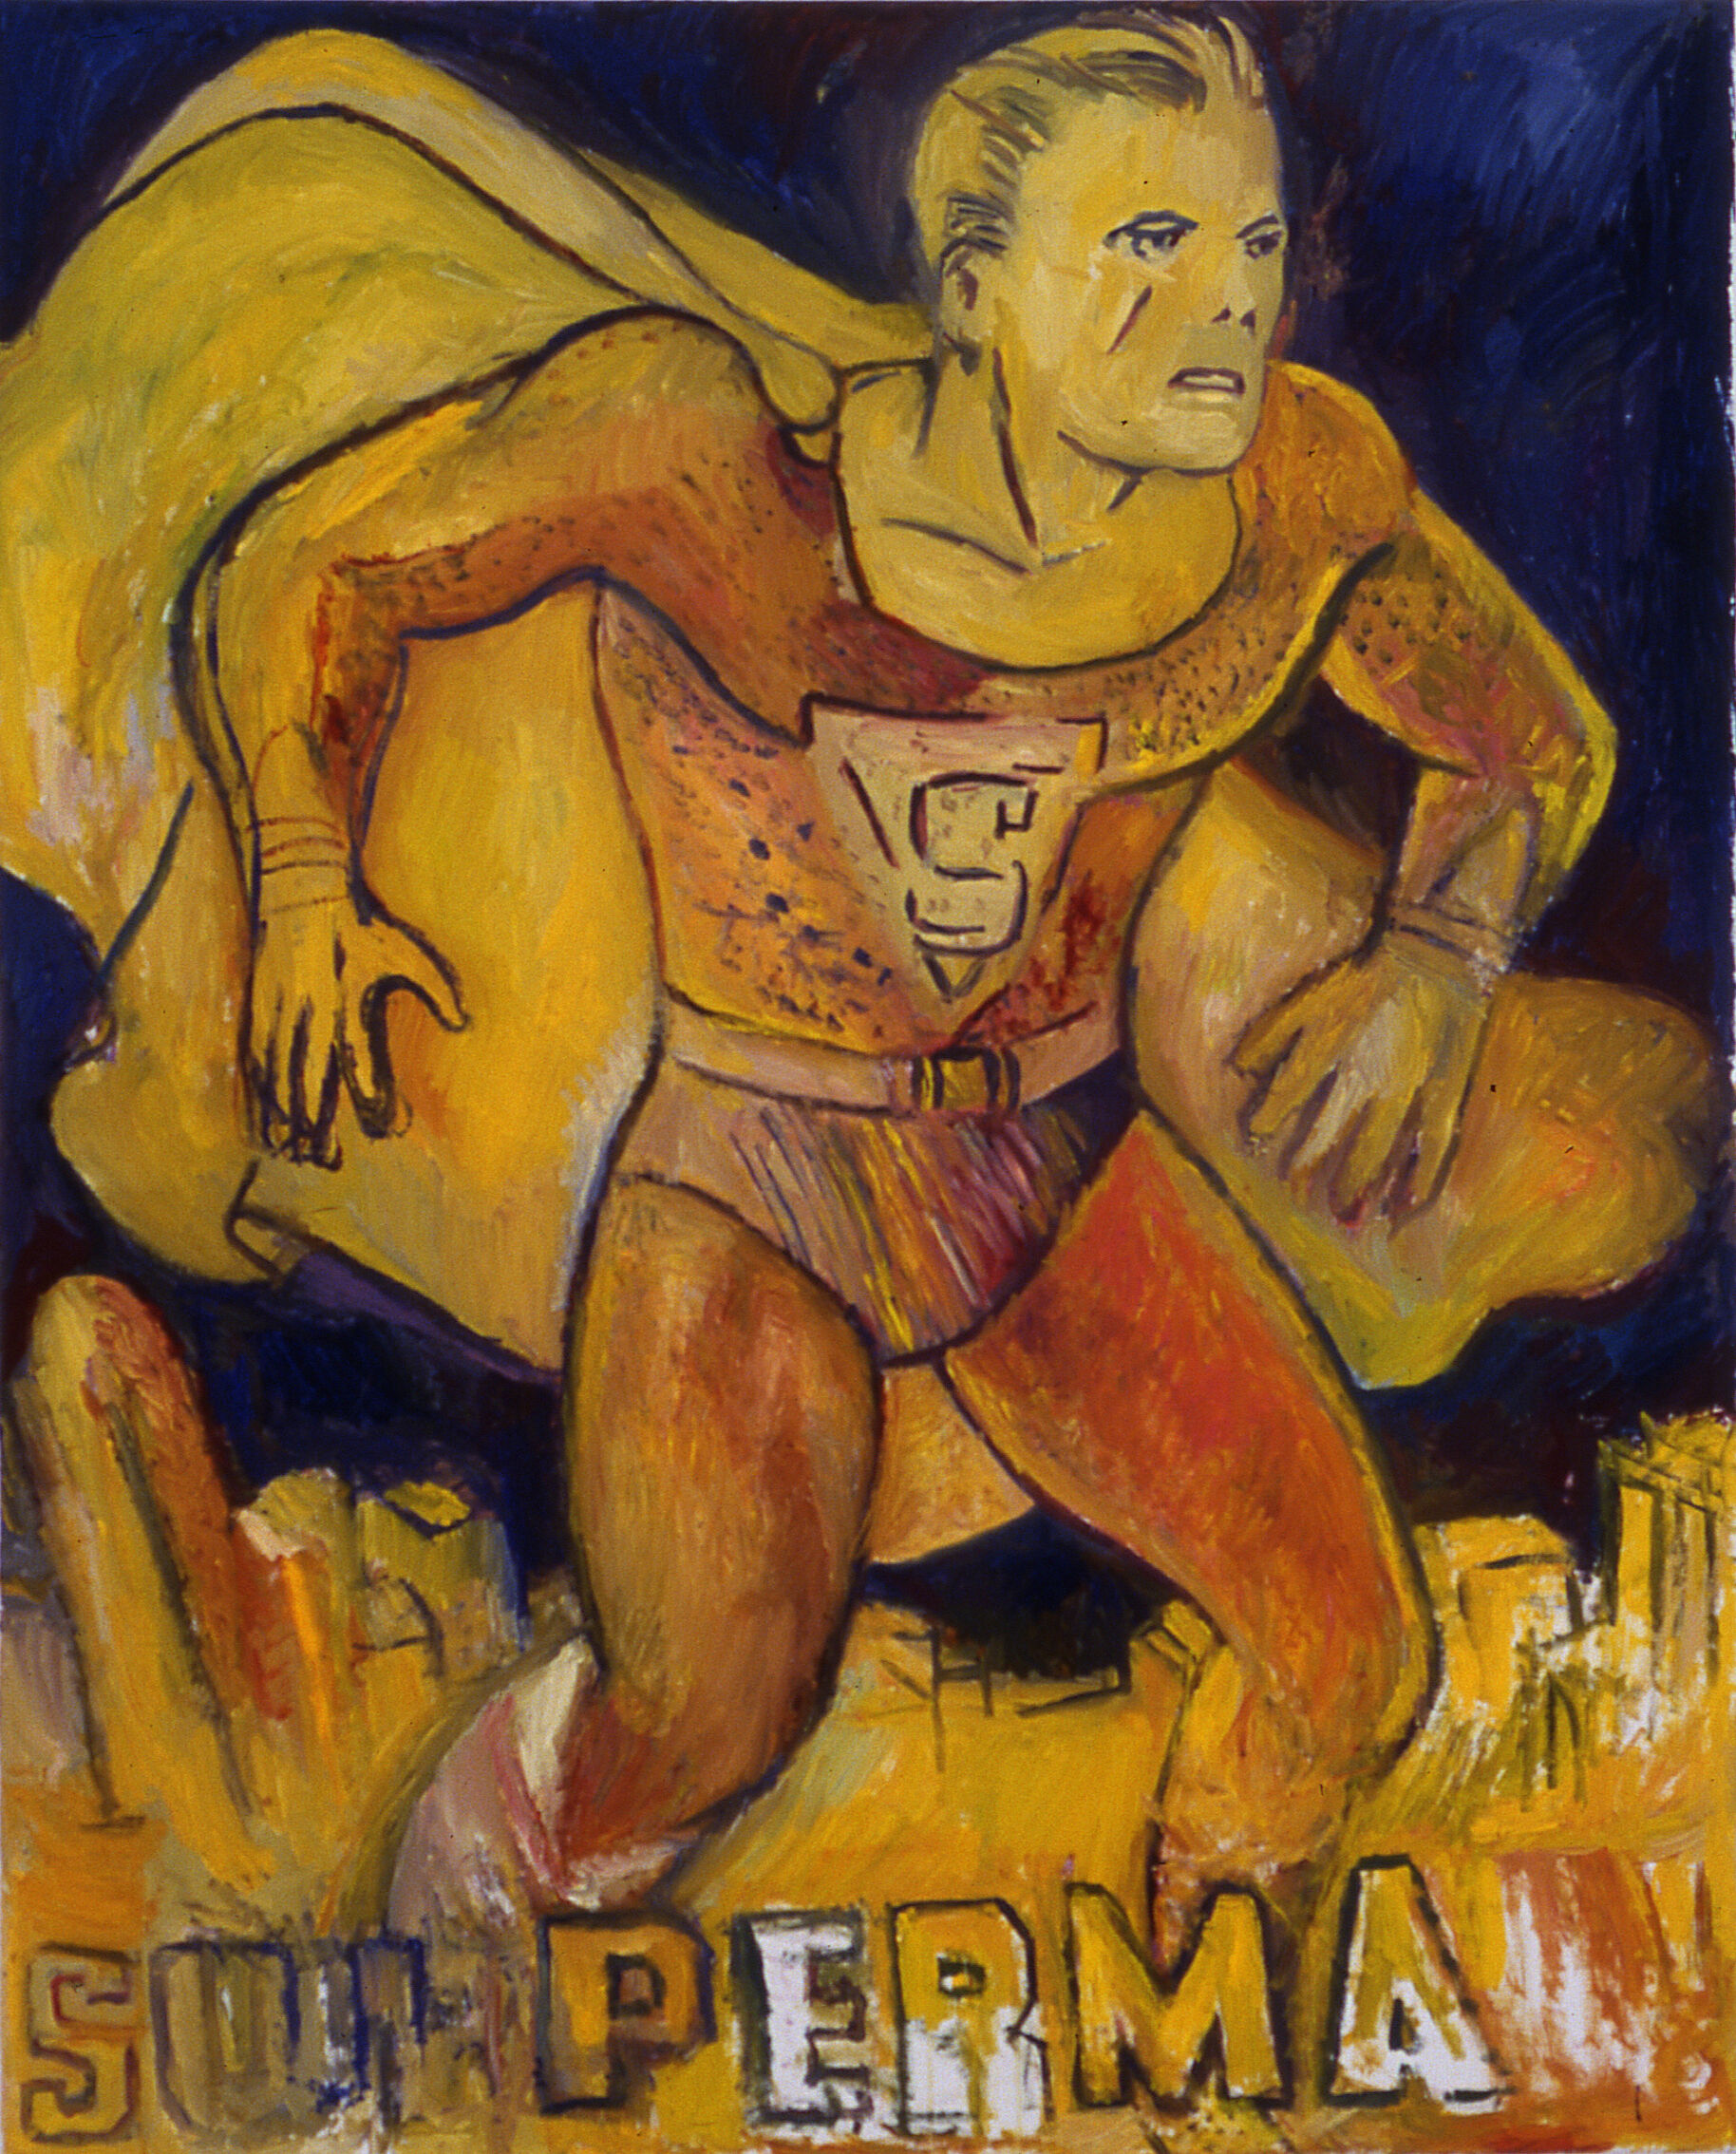 A painting of Superman.